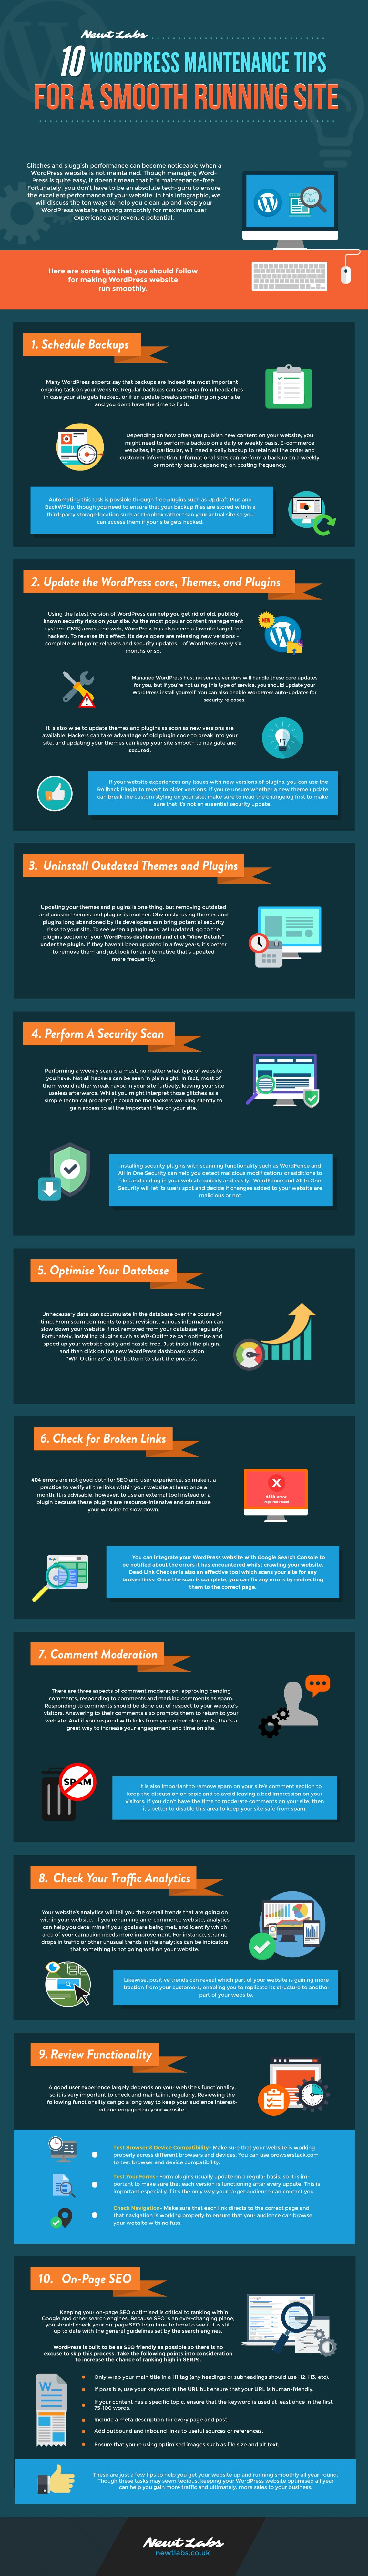 10 WordPress Maintenance Tips for a More Effective Business Website [Infographic]